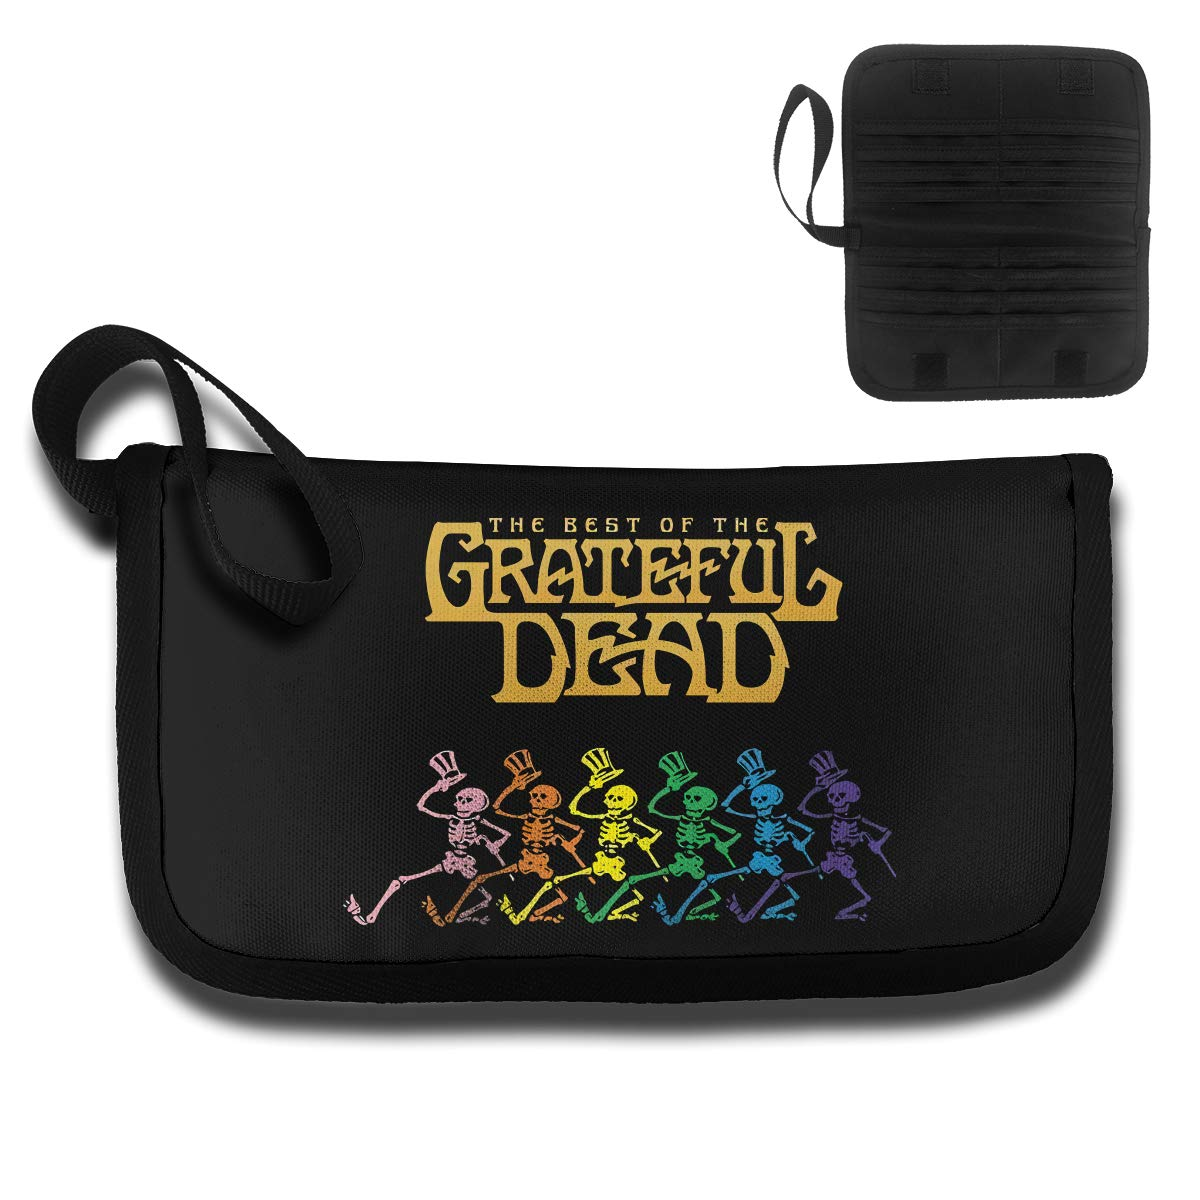 4.6oz KELTY S LANCE The Grateful Dead Customized Unisex Card Bag,with A Handle,Travel Wallet